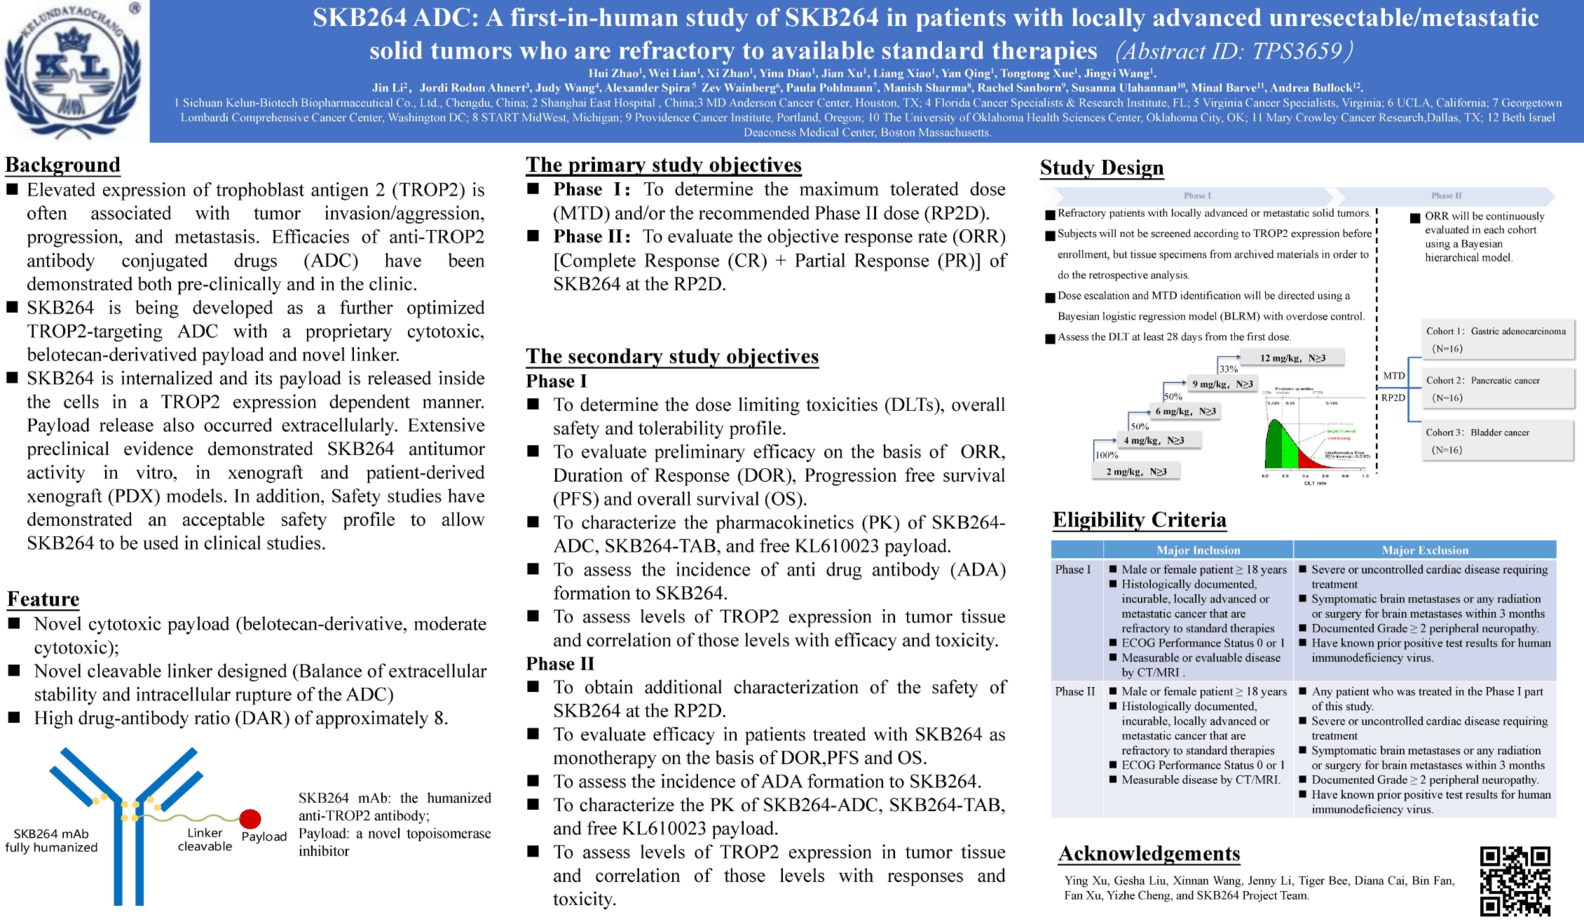 Poster Presentation #TPS3659: SKB264 ADC: A first-in-human study of SKB264 in patients with locally advanced unresectable/metastatic solid tumors who are refractory to available standard therapies.